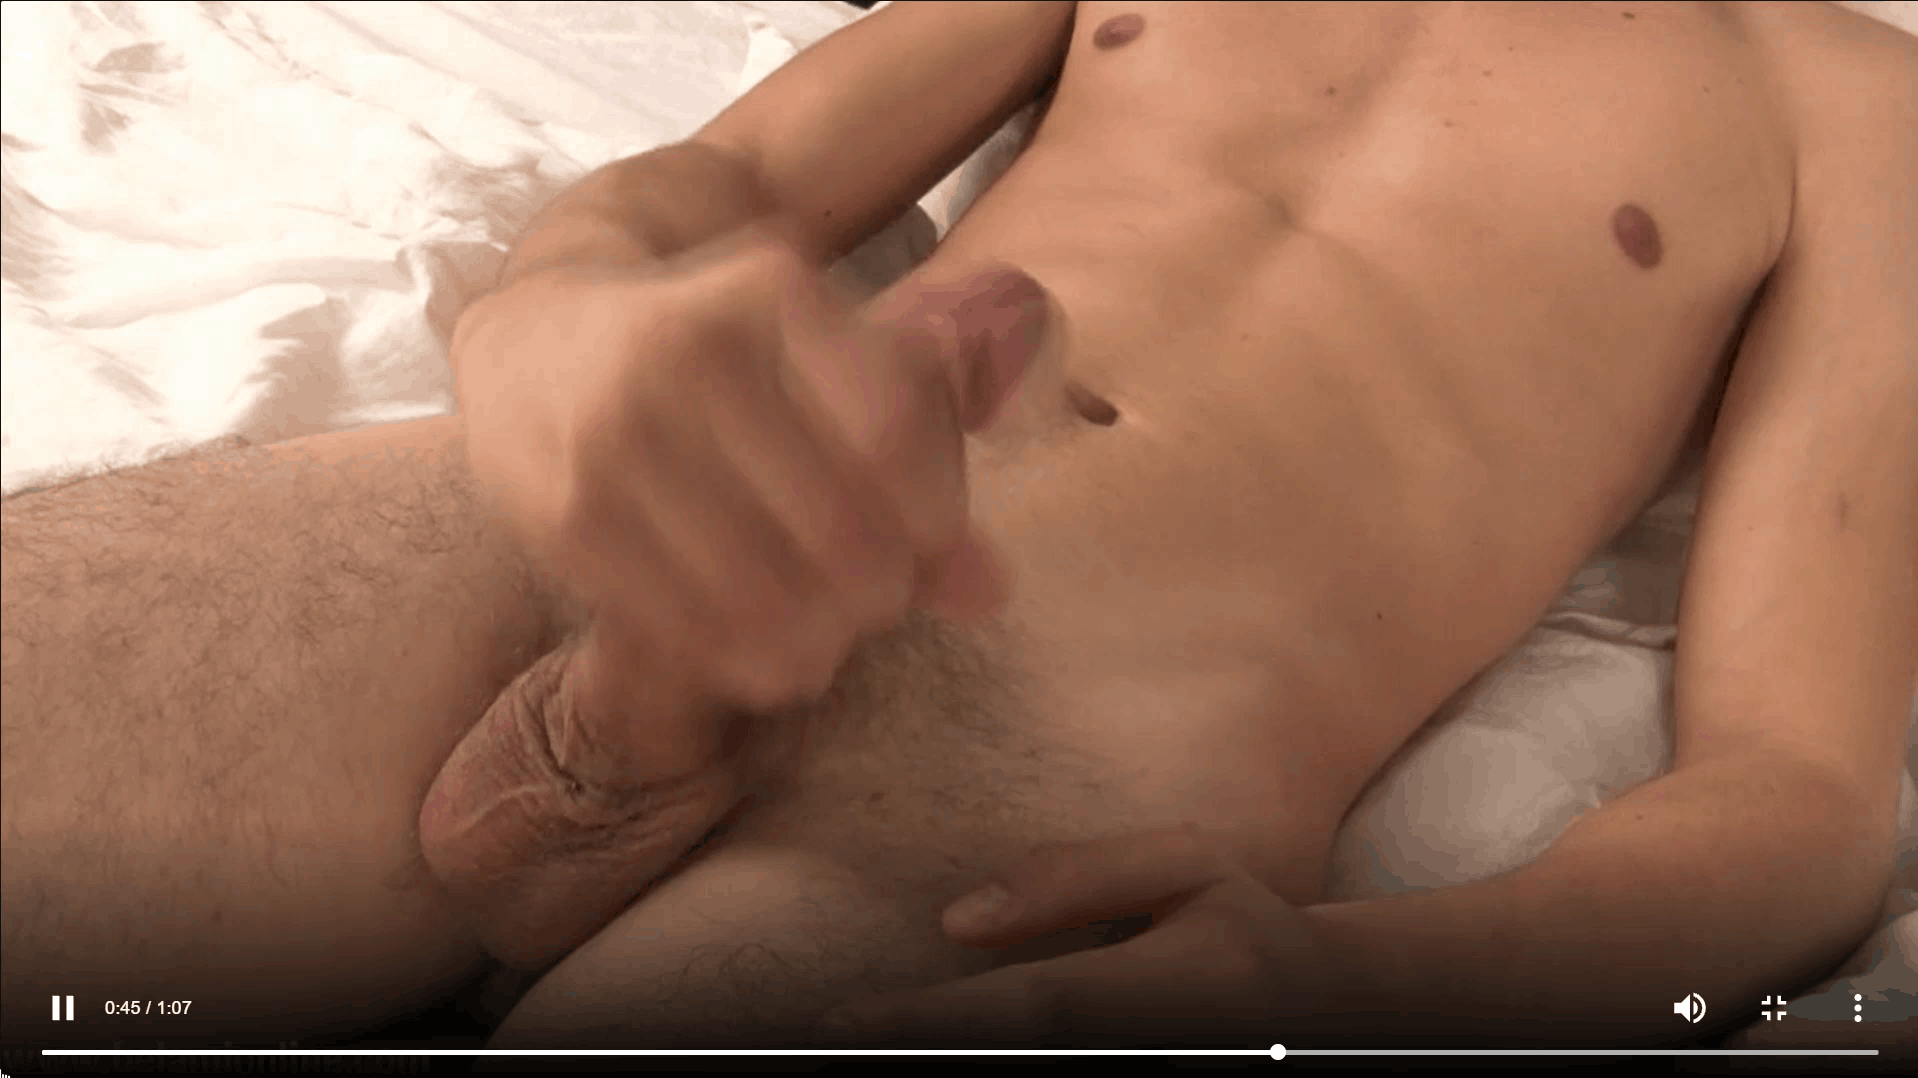 Sexy dark haired young twink Pascal Mauri steps out of the shower stroking big thick uncut dick 12 gay porn pics - Sexy dark haired young twink Pascal Mauri steps out of the shower stroking his big thick uncut dick